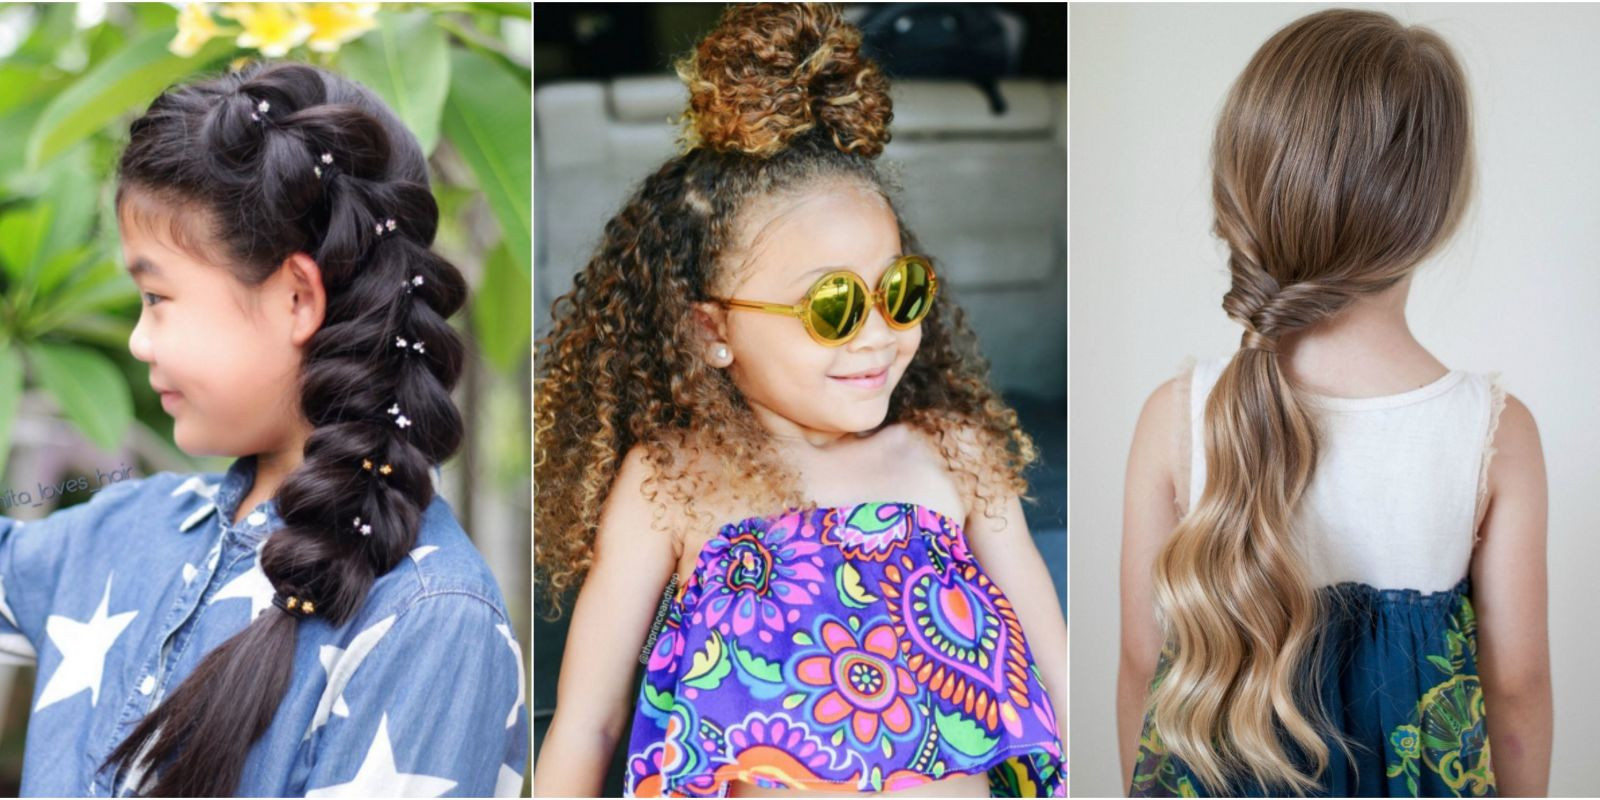 Best ideas about Kids Hairstyles For School . Save or Pin 23 Beautiful Kids Hairstyles to Try on Your Daughter Now.